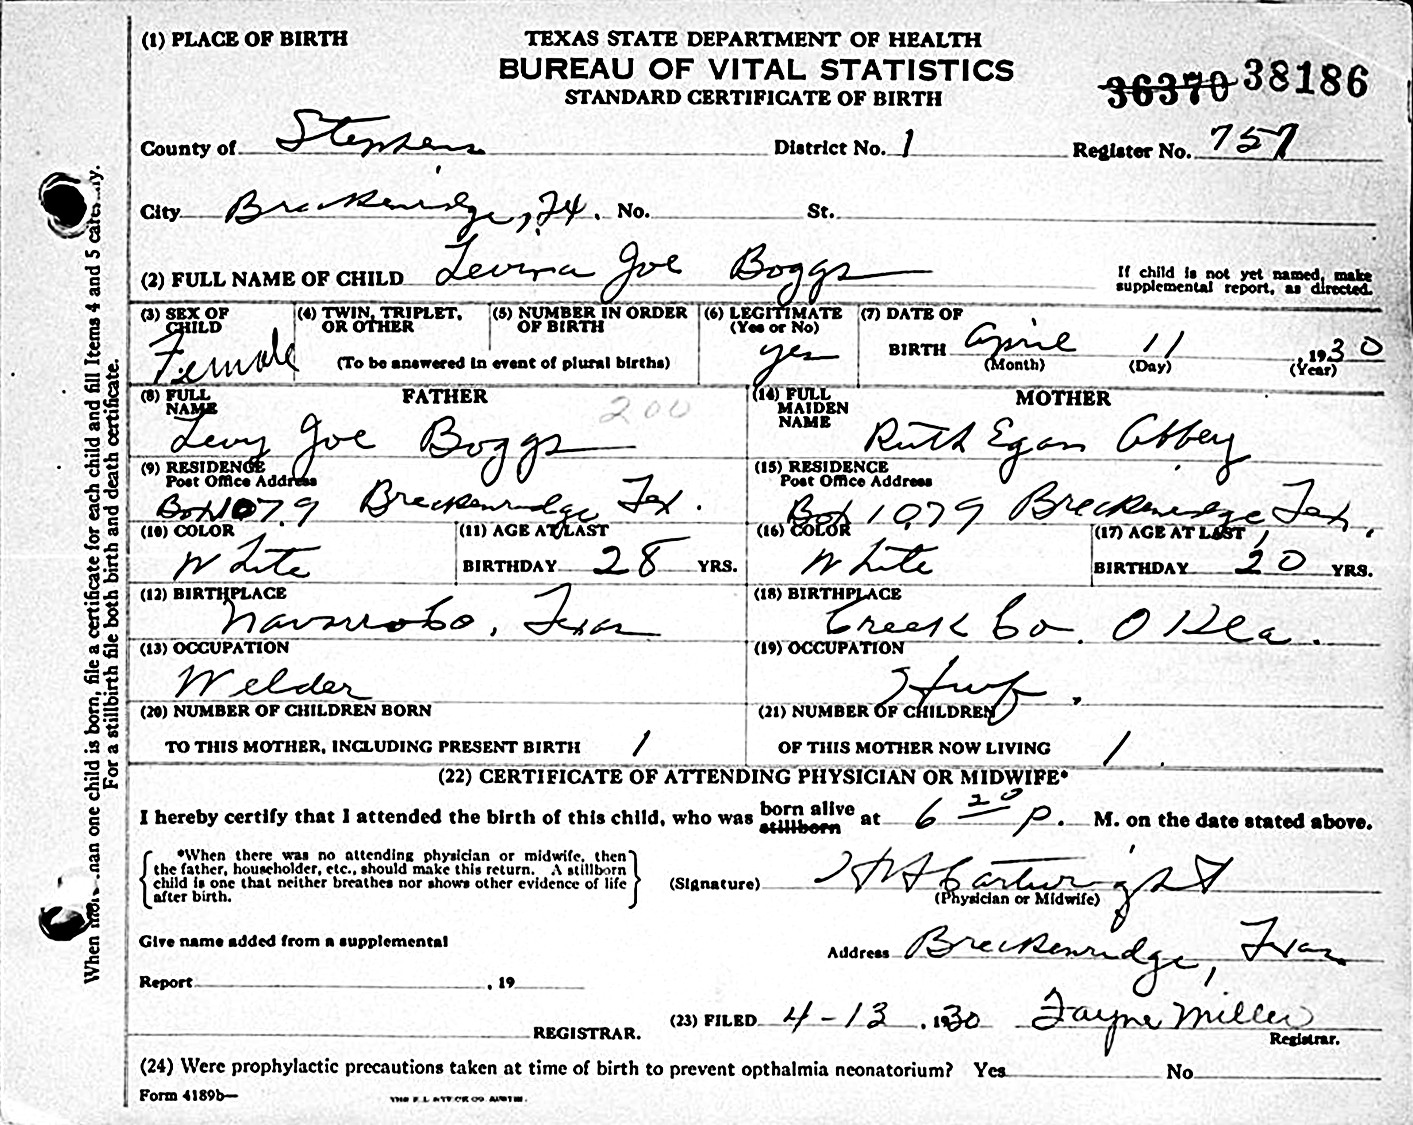 Ruth egan abbey lavenia jo boggs birth certificate xflitez Image collections